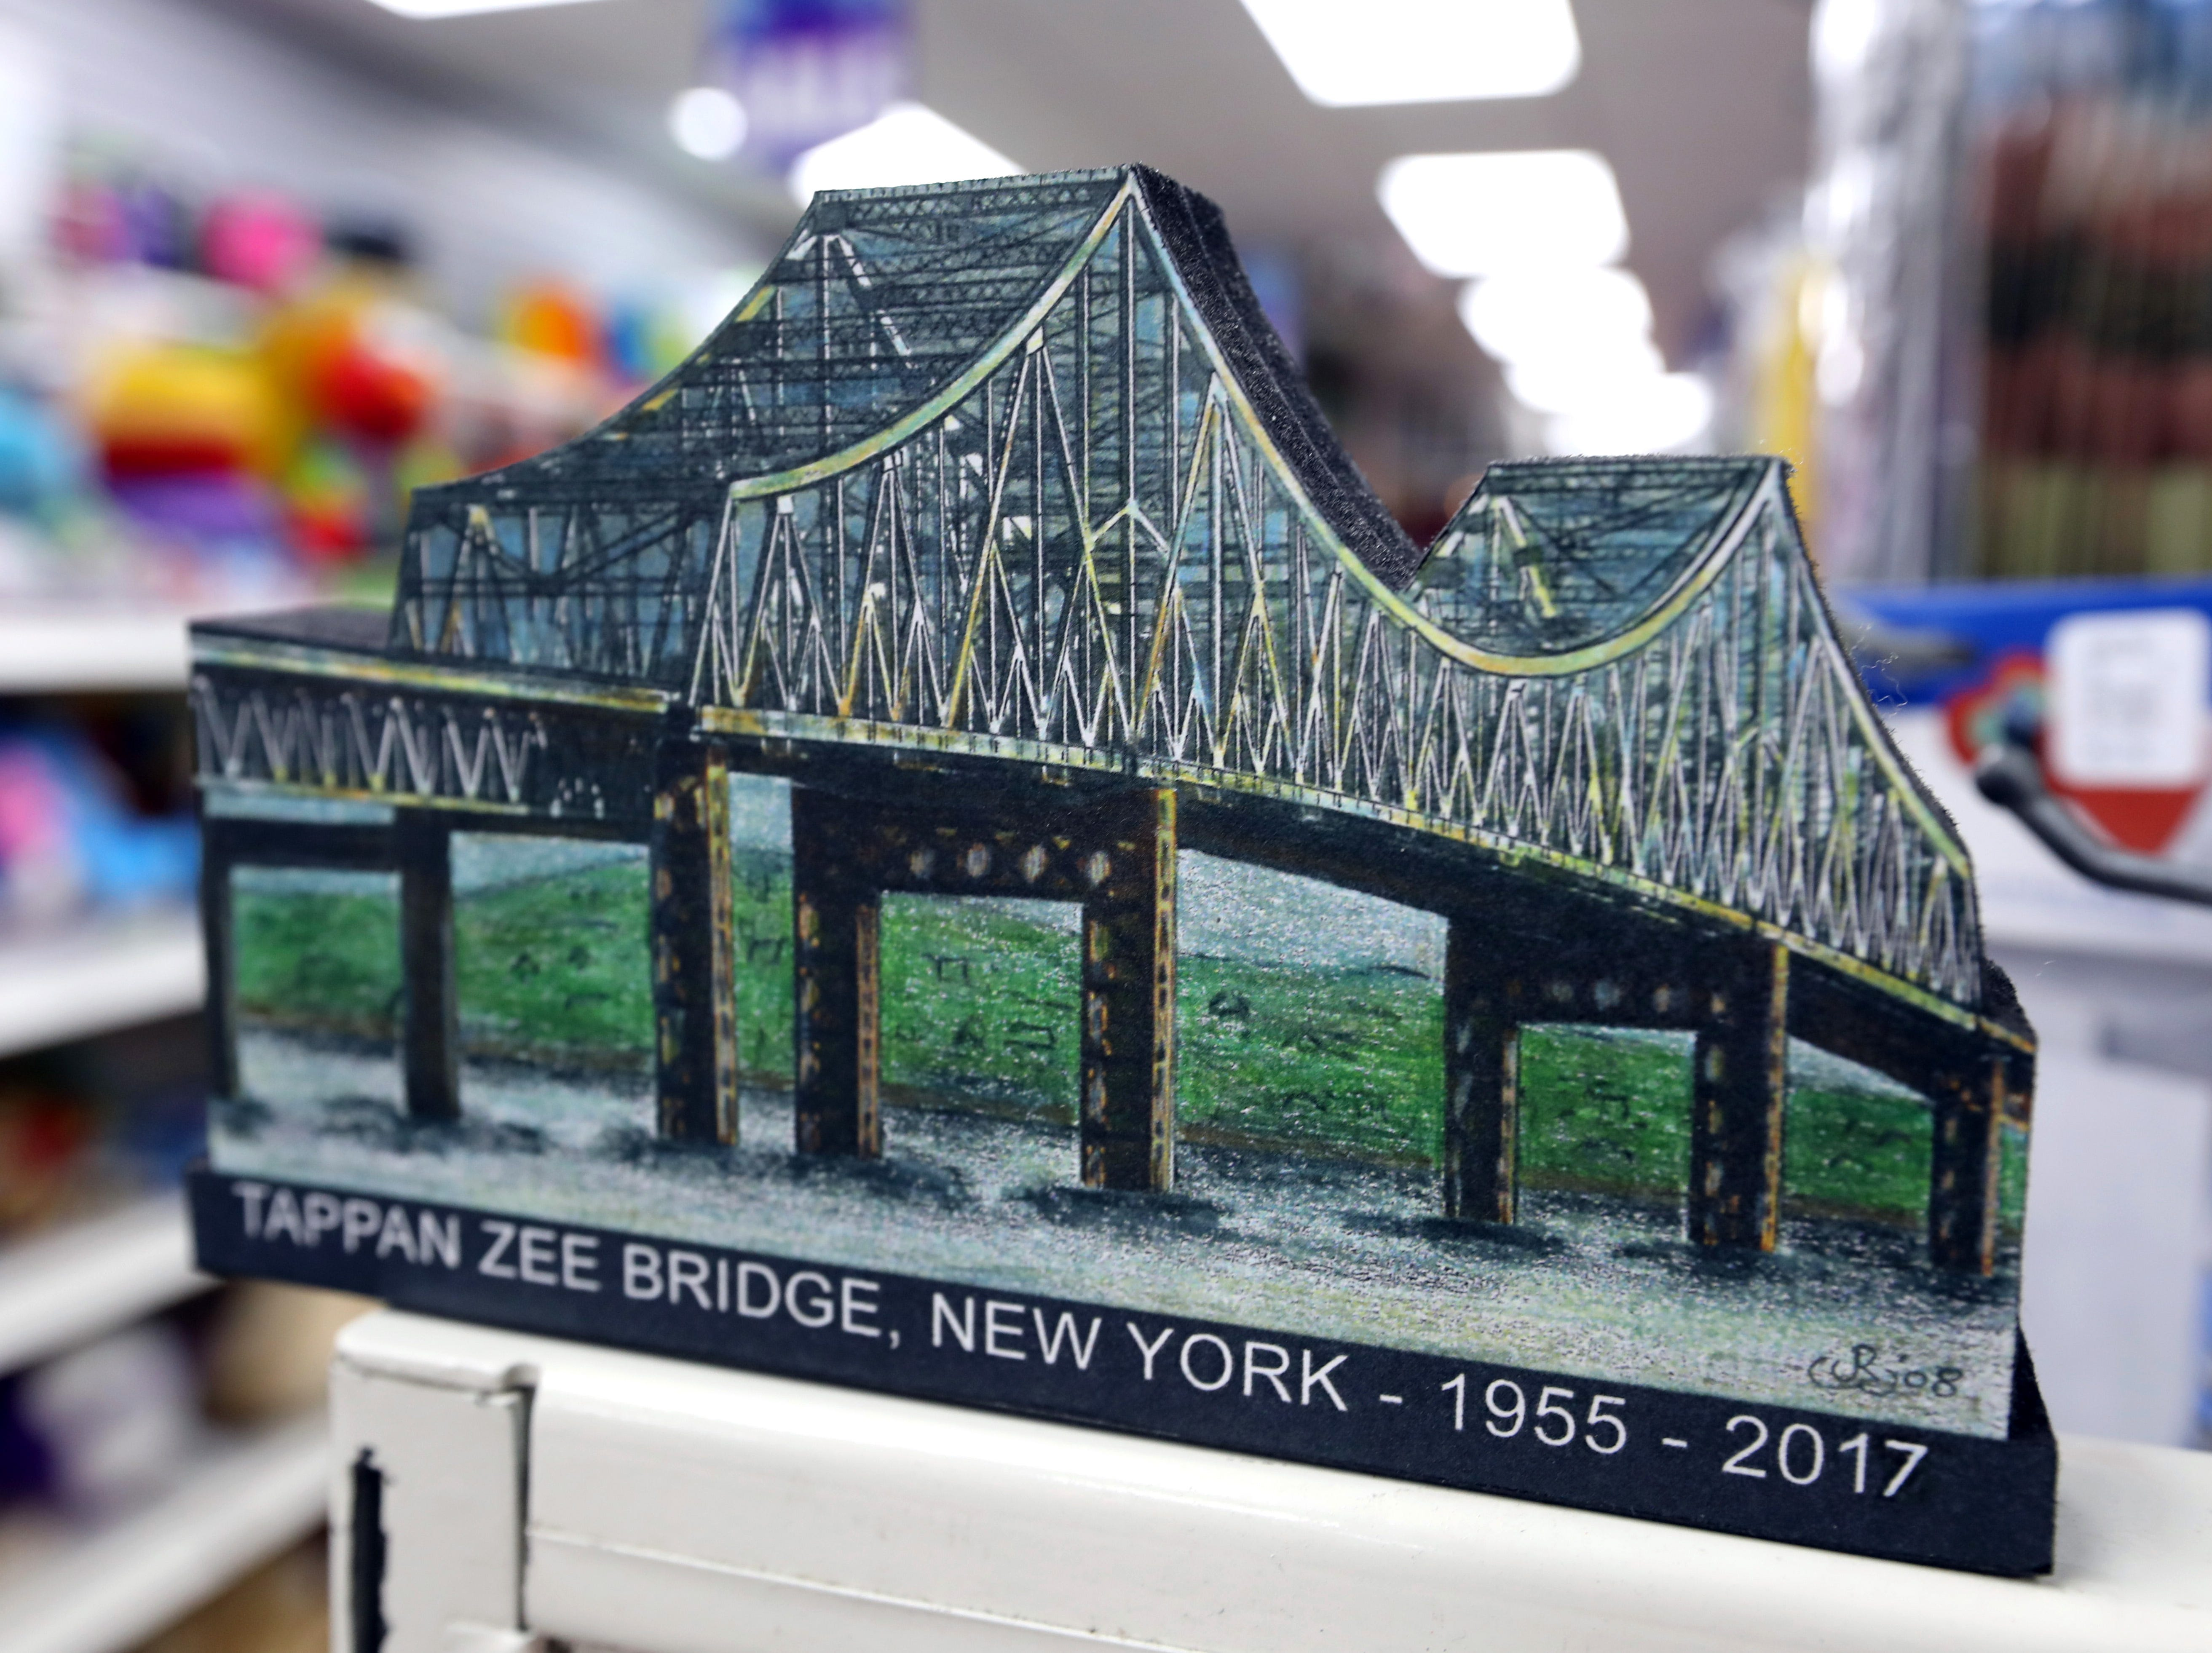 A woodblock miniature of the Tappan Zee Bridge by John Rossi at Koblin's Pharmacy in Nyack Jan. 9, 2019.